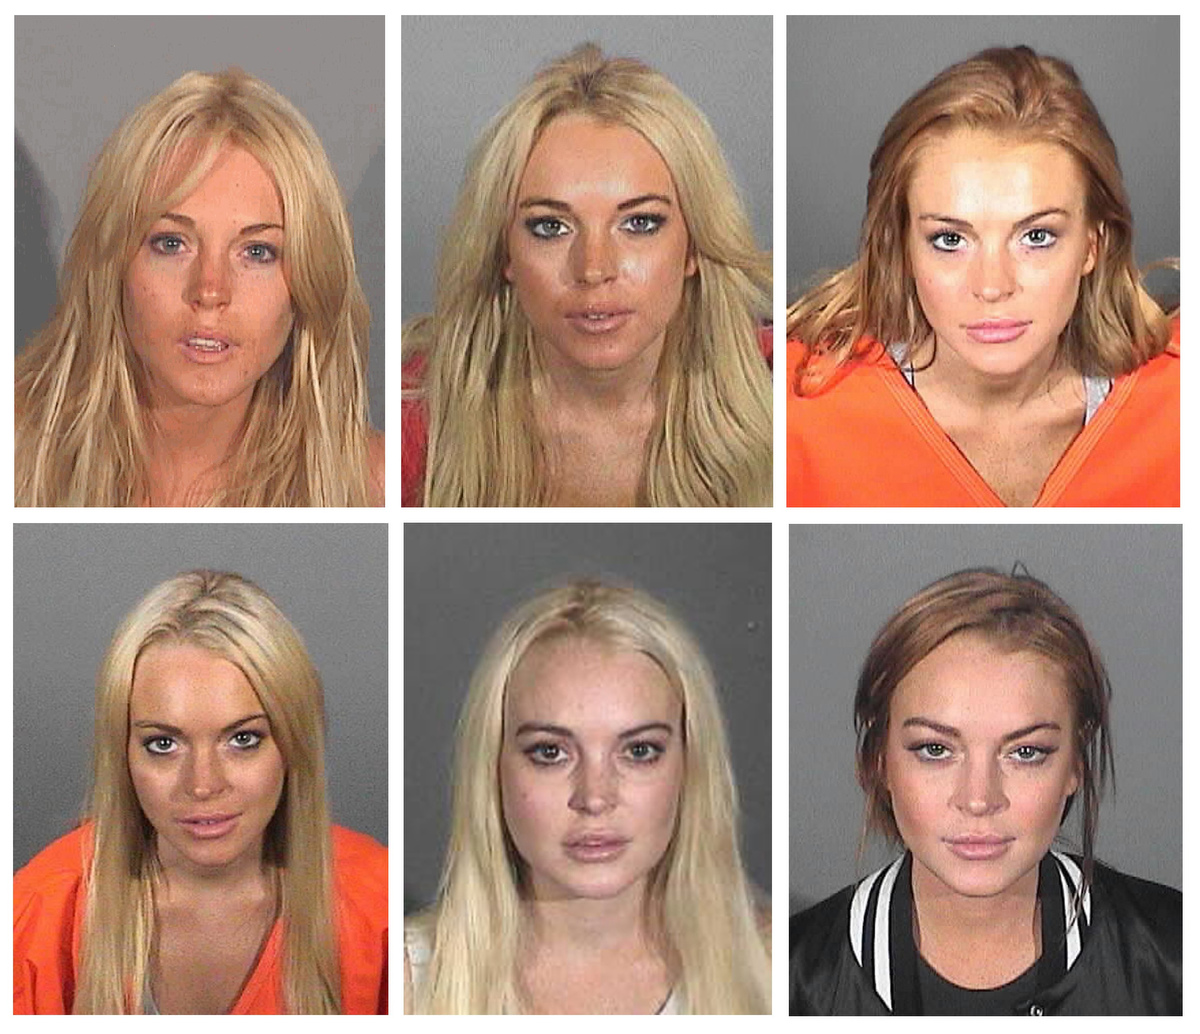 March 20 Photo Brief: A collection of Lindsay Lohan mugshots, President Obama visits Israel and tigers in London get a new home